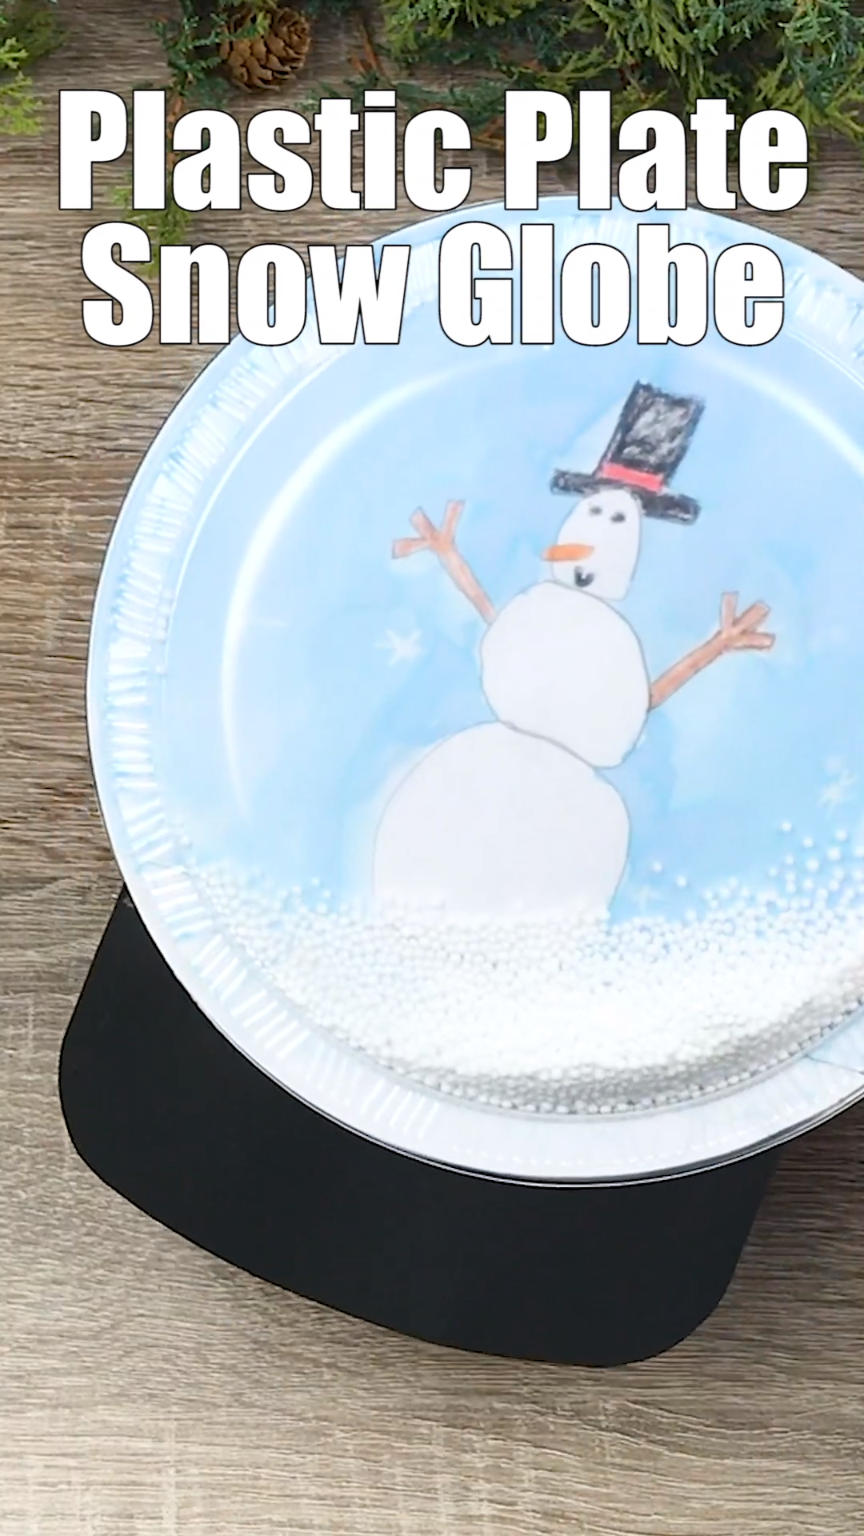 Kids will enjoy making a DIY plastic plate snow globe craft this holiday season! This fun Christmas craft looks great on bulletin boards and is an easy holiday gift for parents and grandparents. #kids #crafts #christmas #preschool